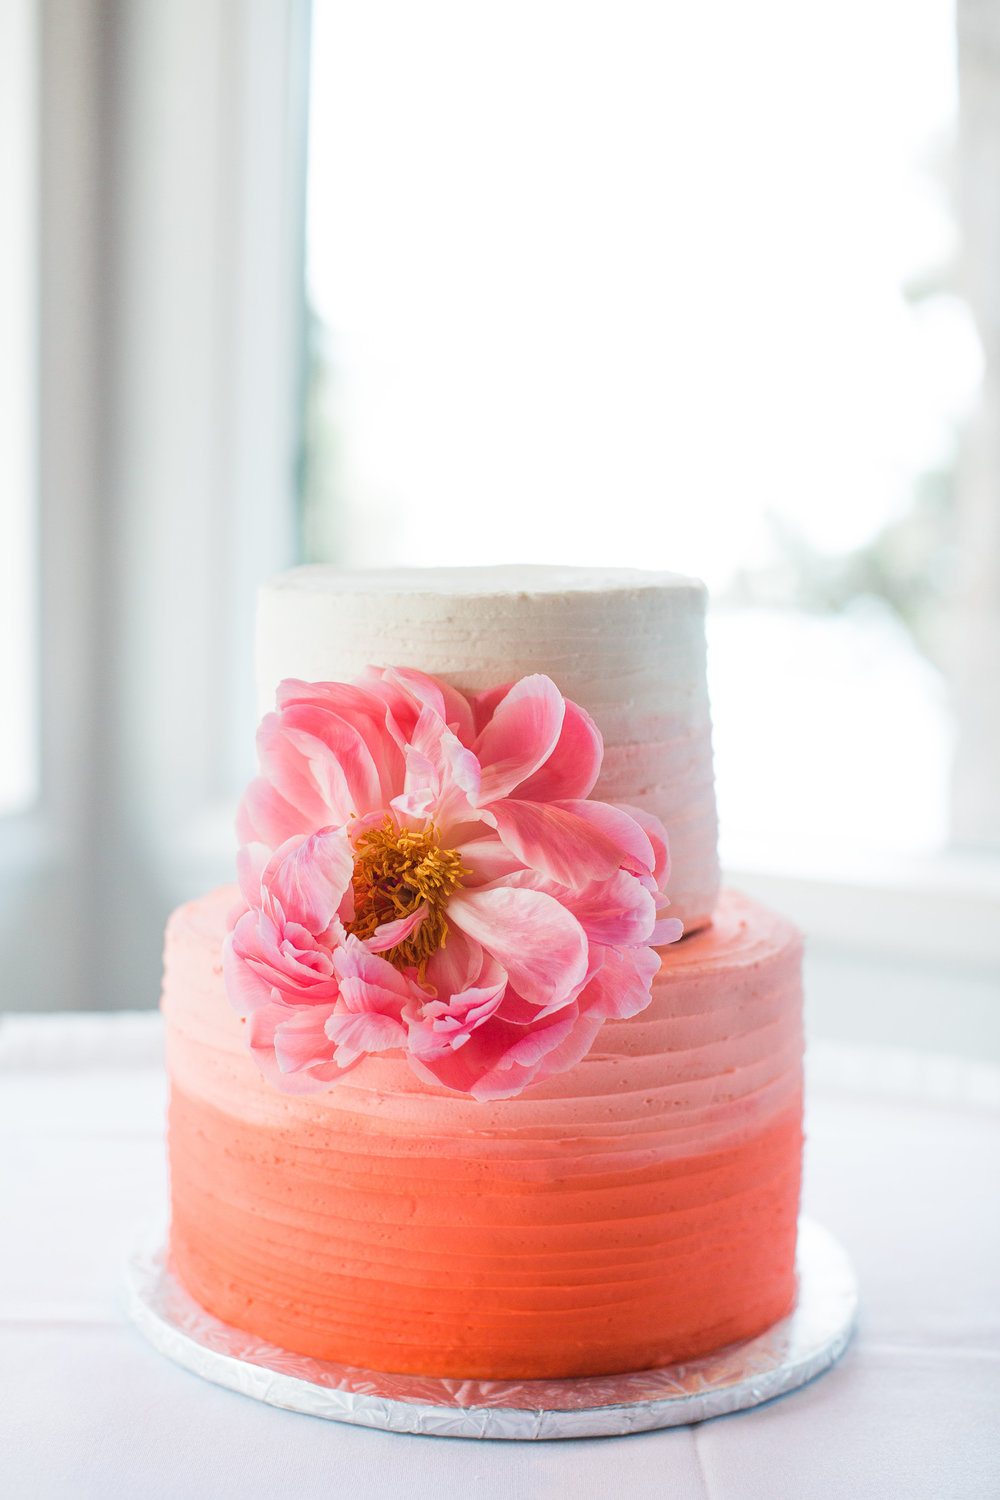 Sugar Rush Bakery  in Medford provided the lovely ombre cake for the reception along with the caramel apple guest favors.